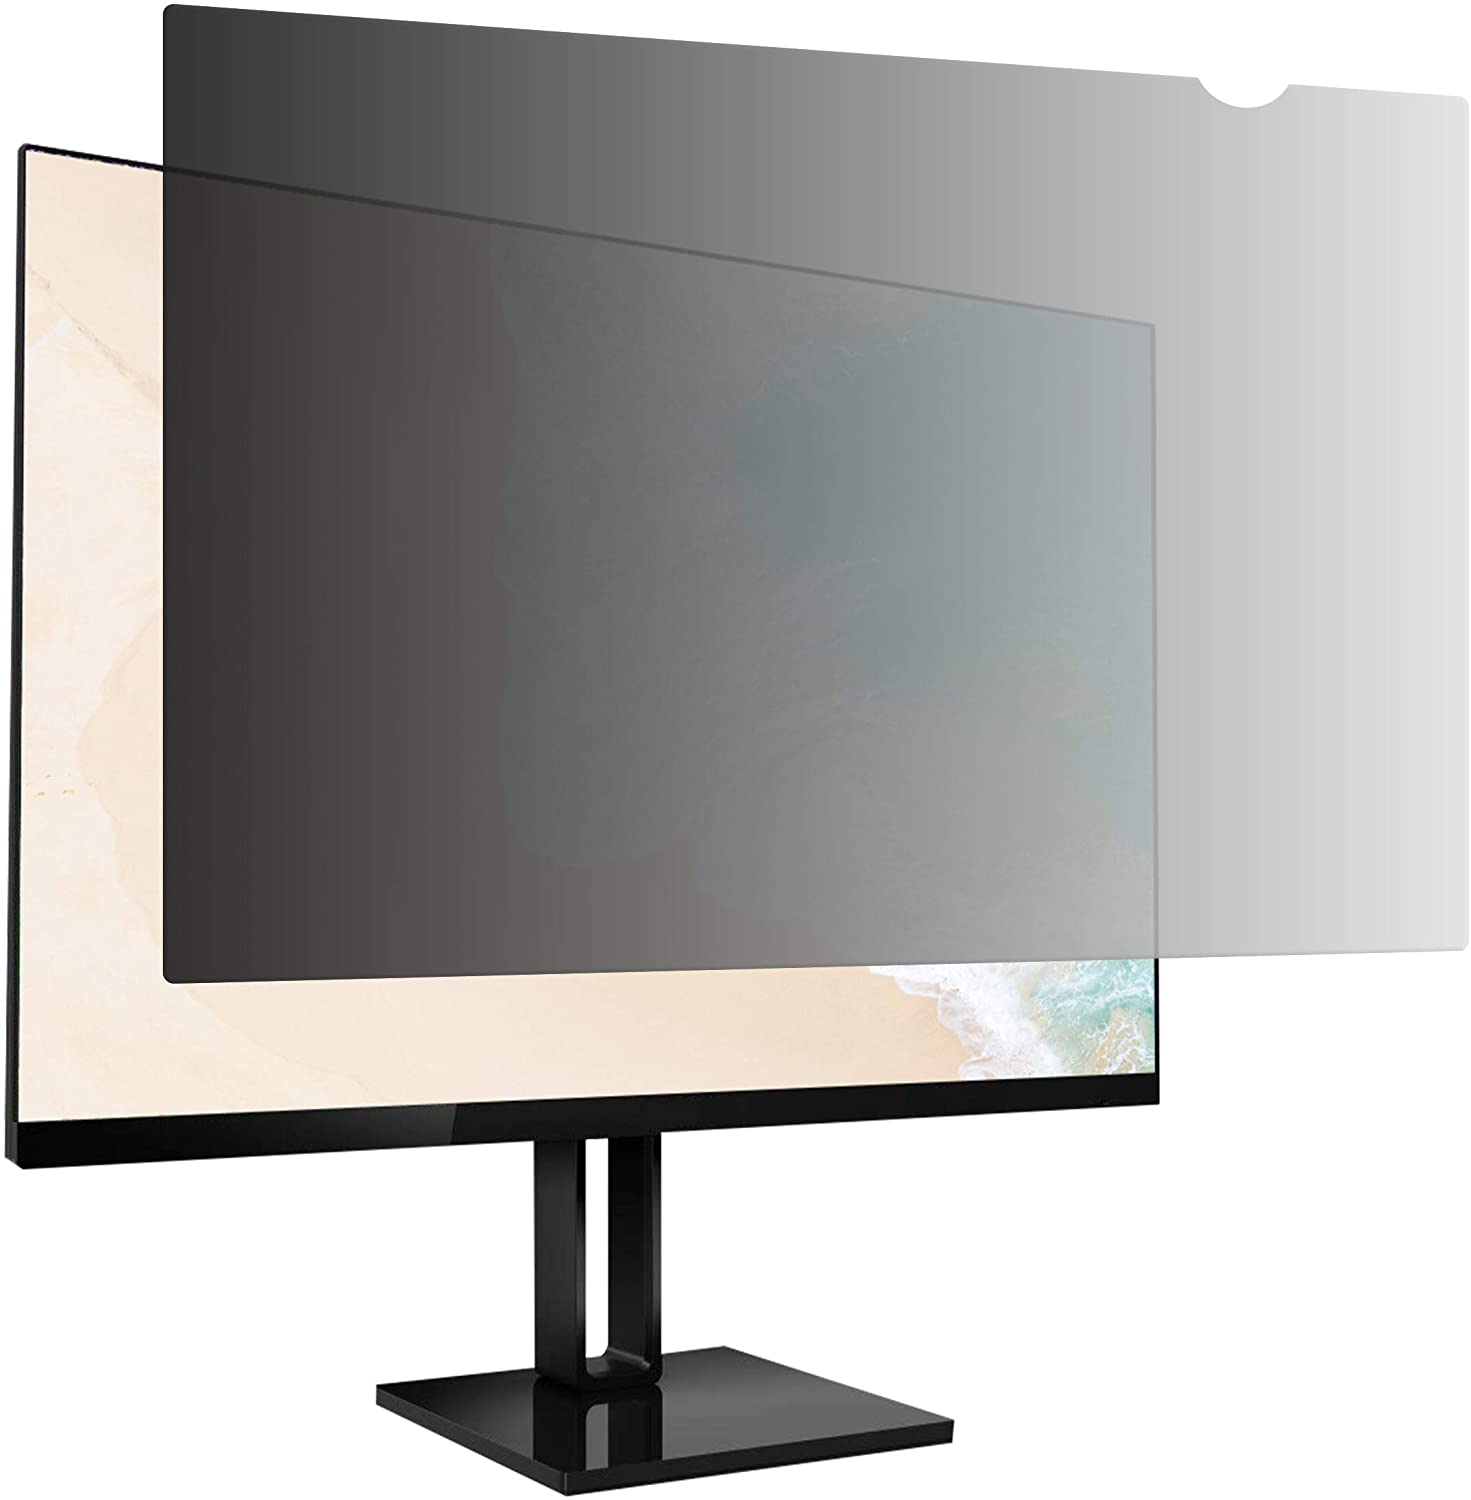 AmazonBasics Privacy Screen Filter - 19.5-Inch 16:9 Widescreen Monitor